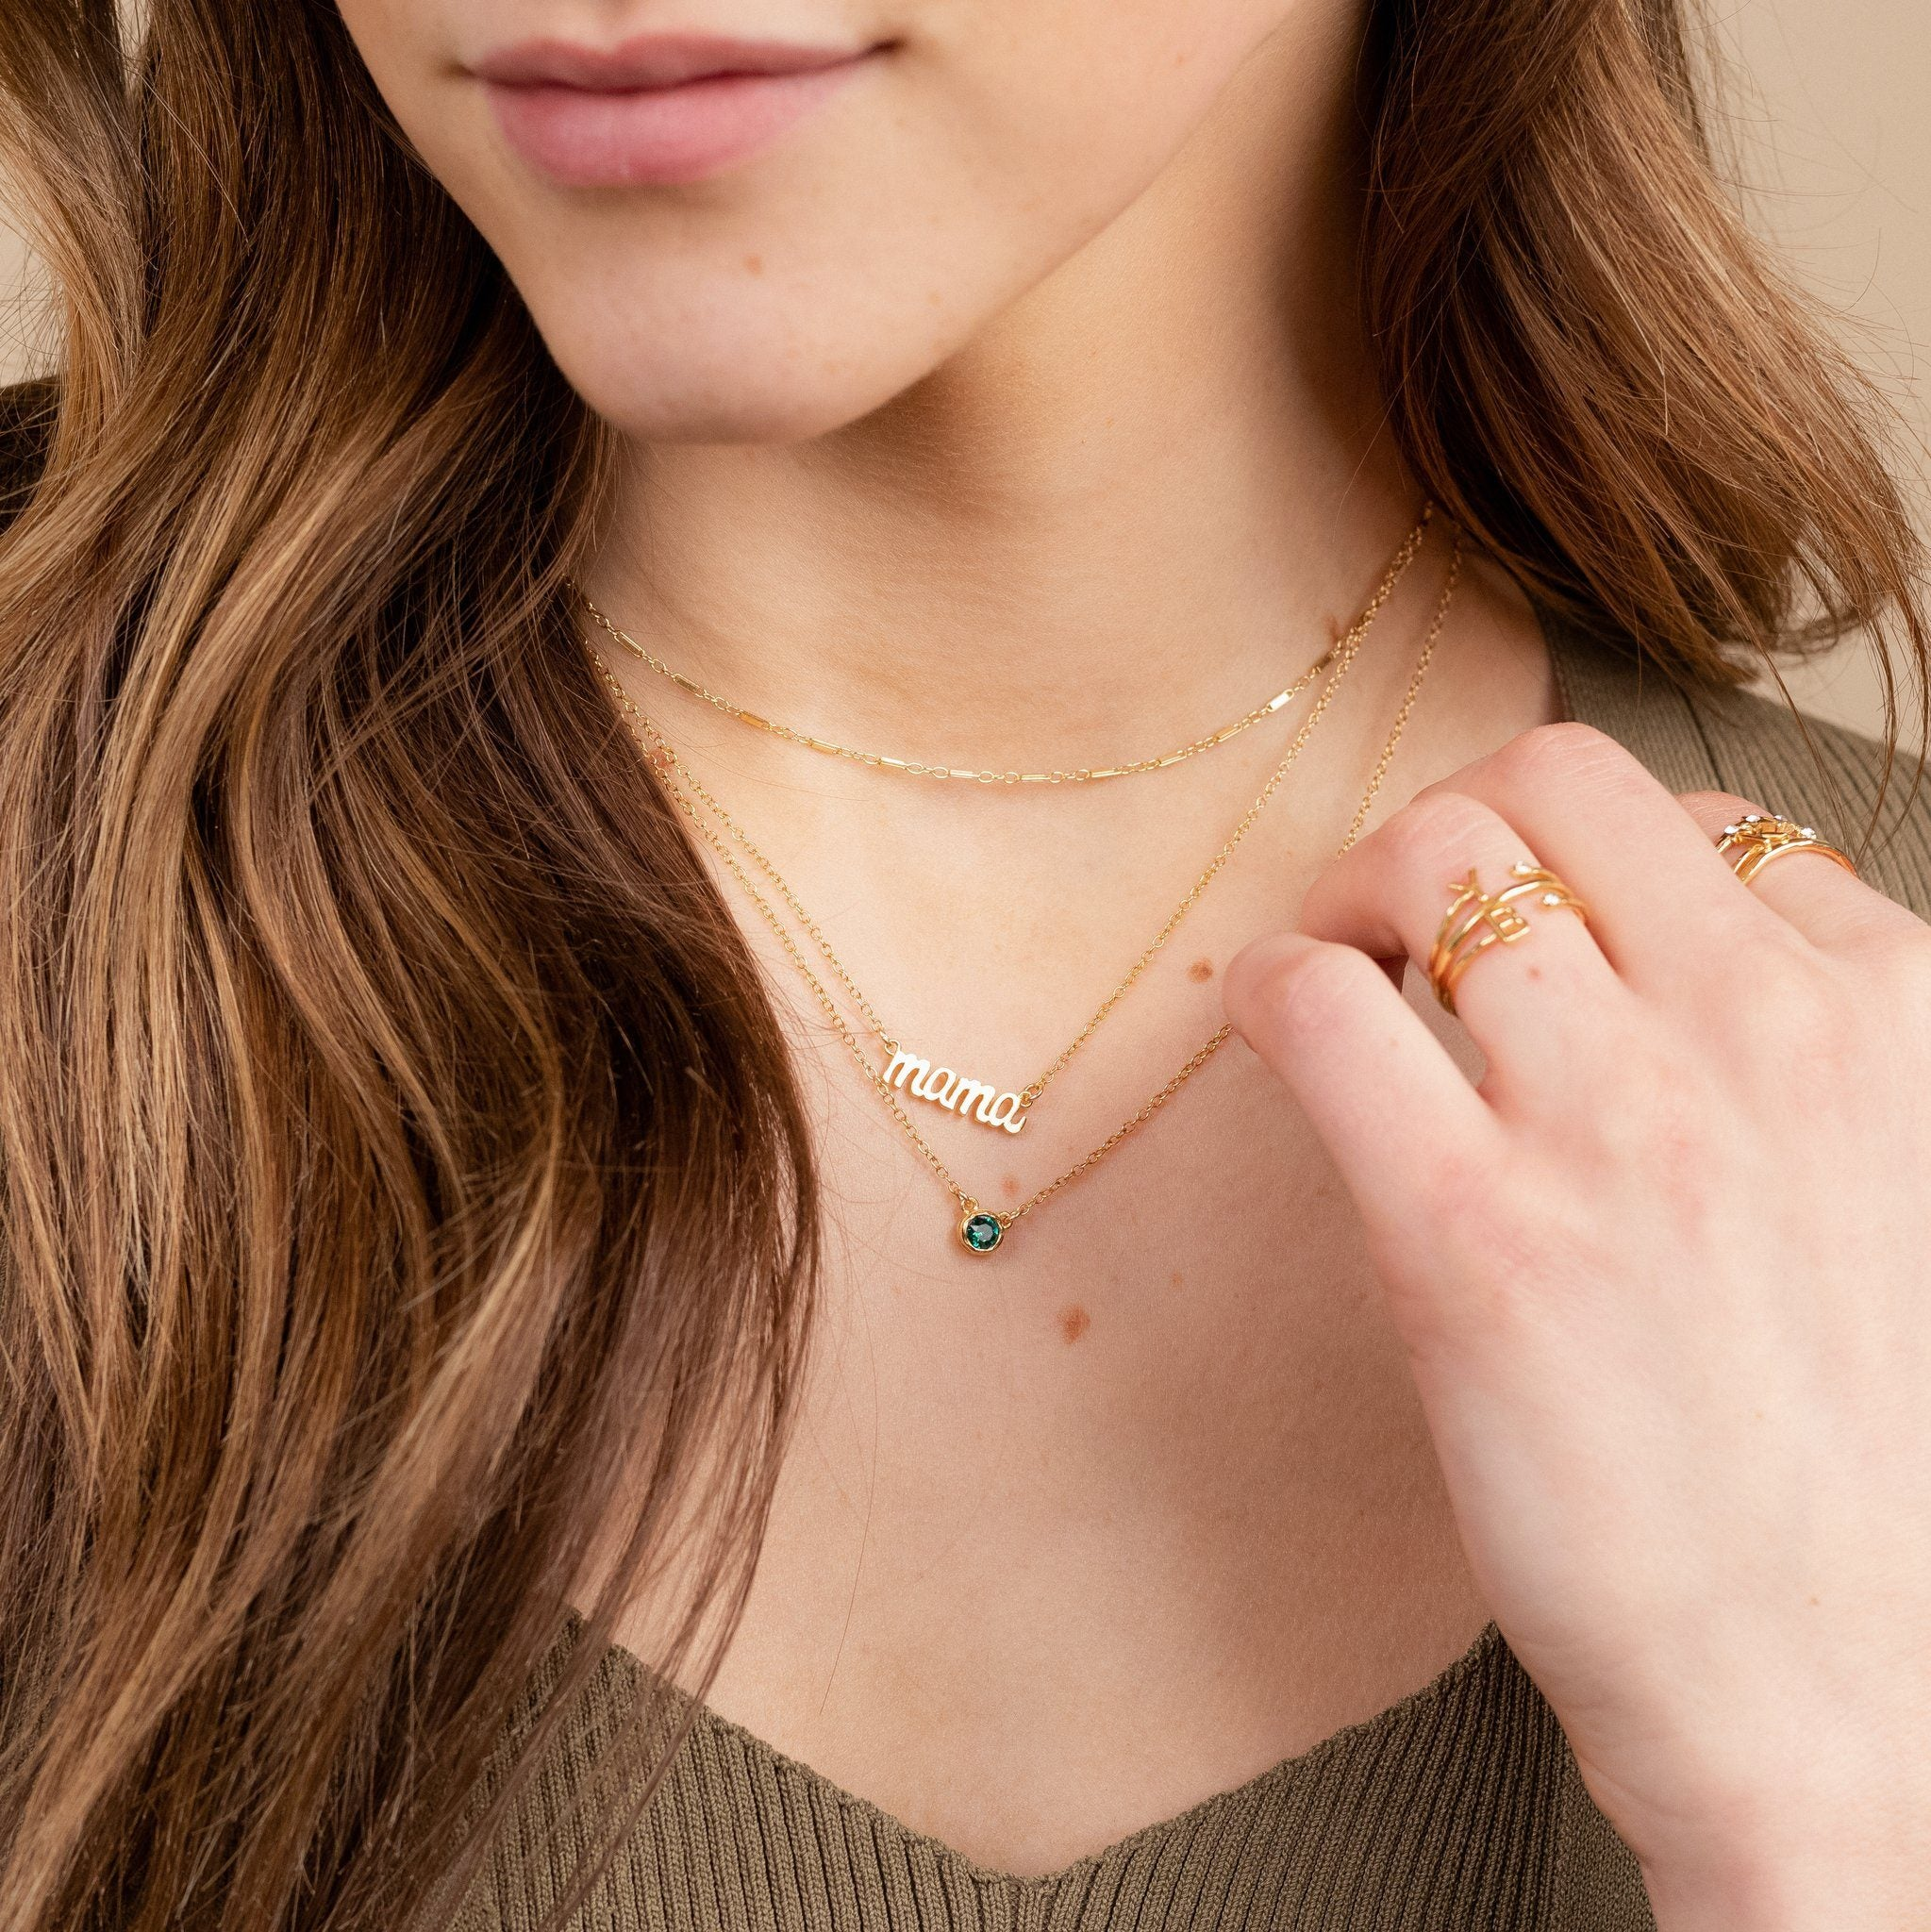 Dainty gold Mama Necklace layered with the Link Choker, and May Birthstone Necklace by Katie Dean Jewelry